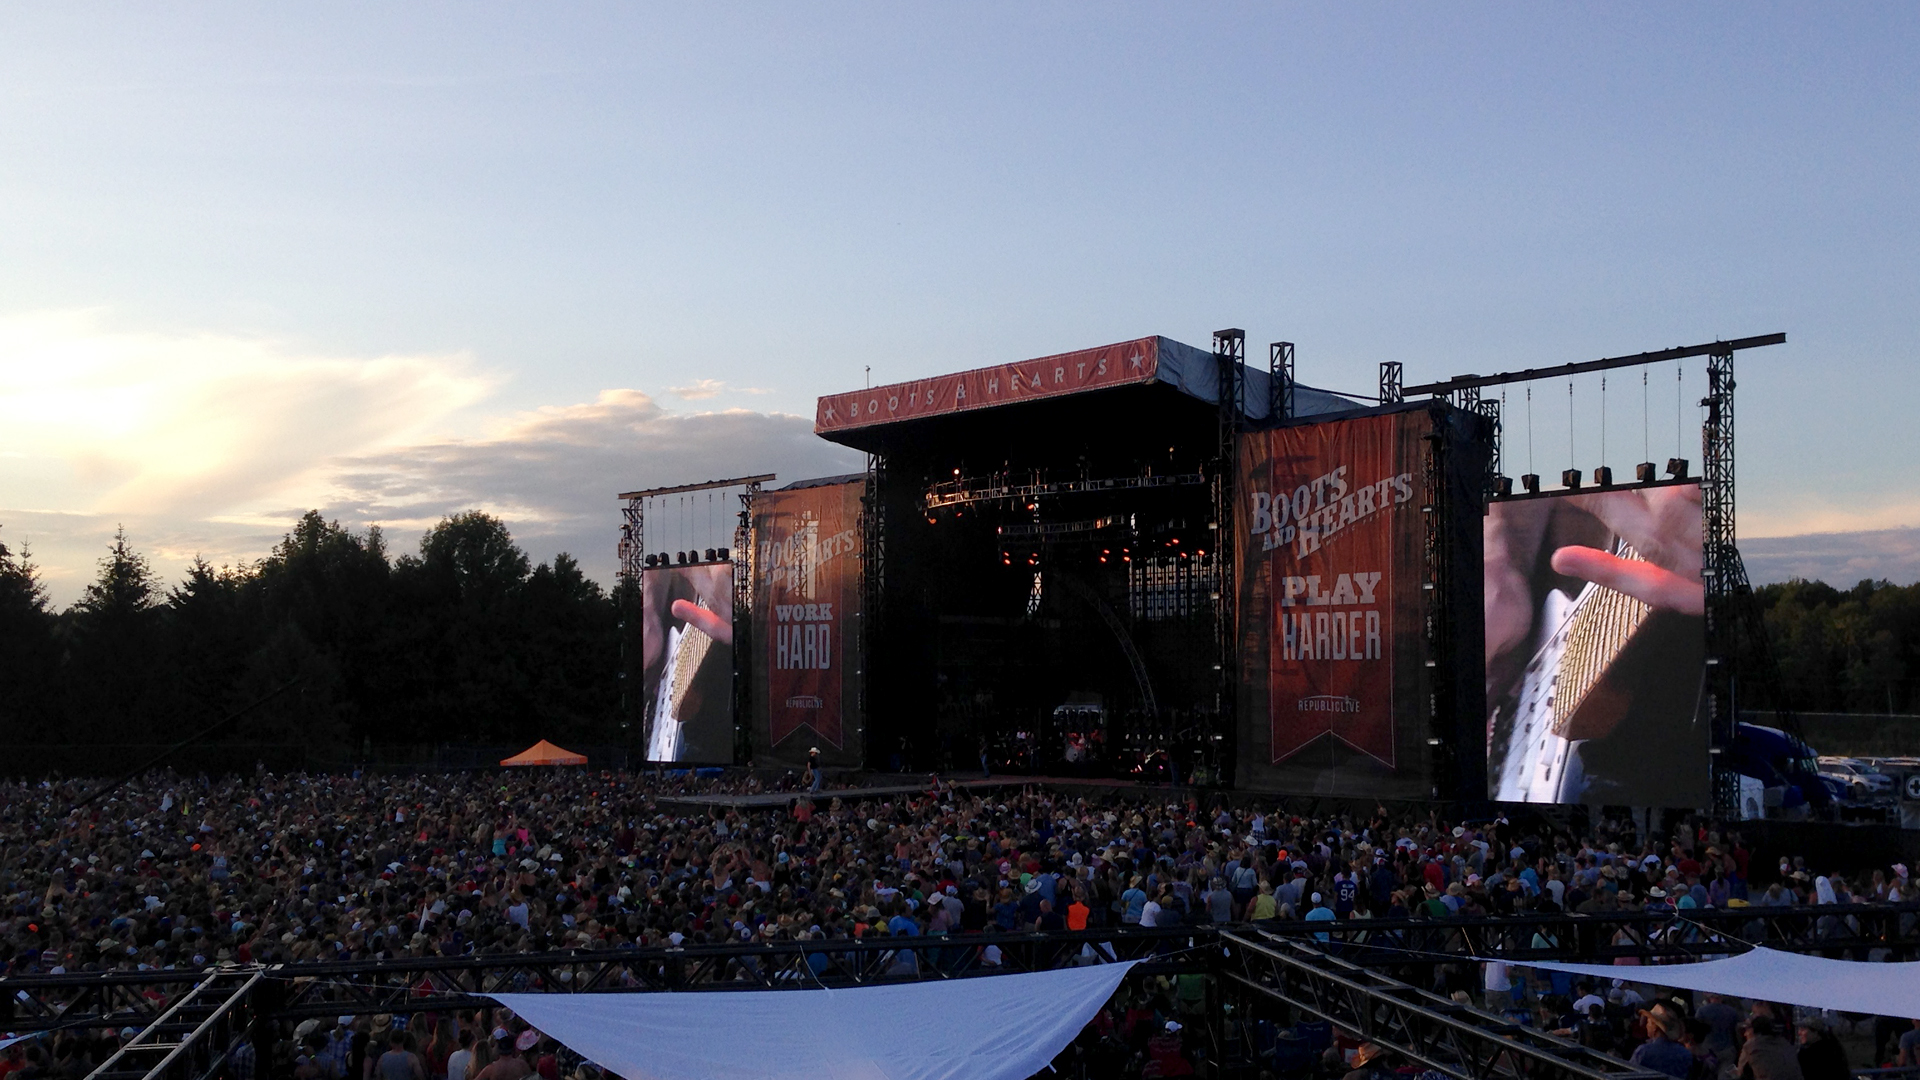 boots and hearts 1 - August Events To Look Forward To